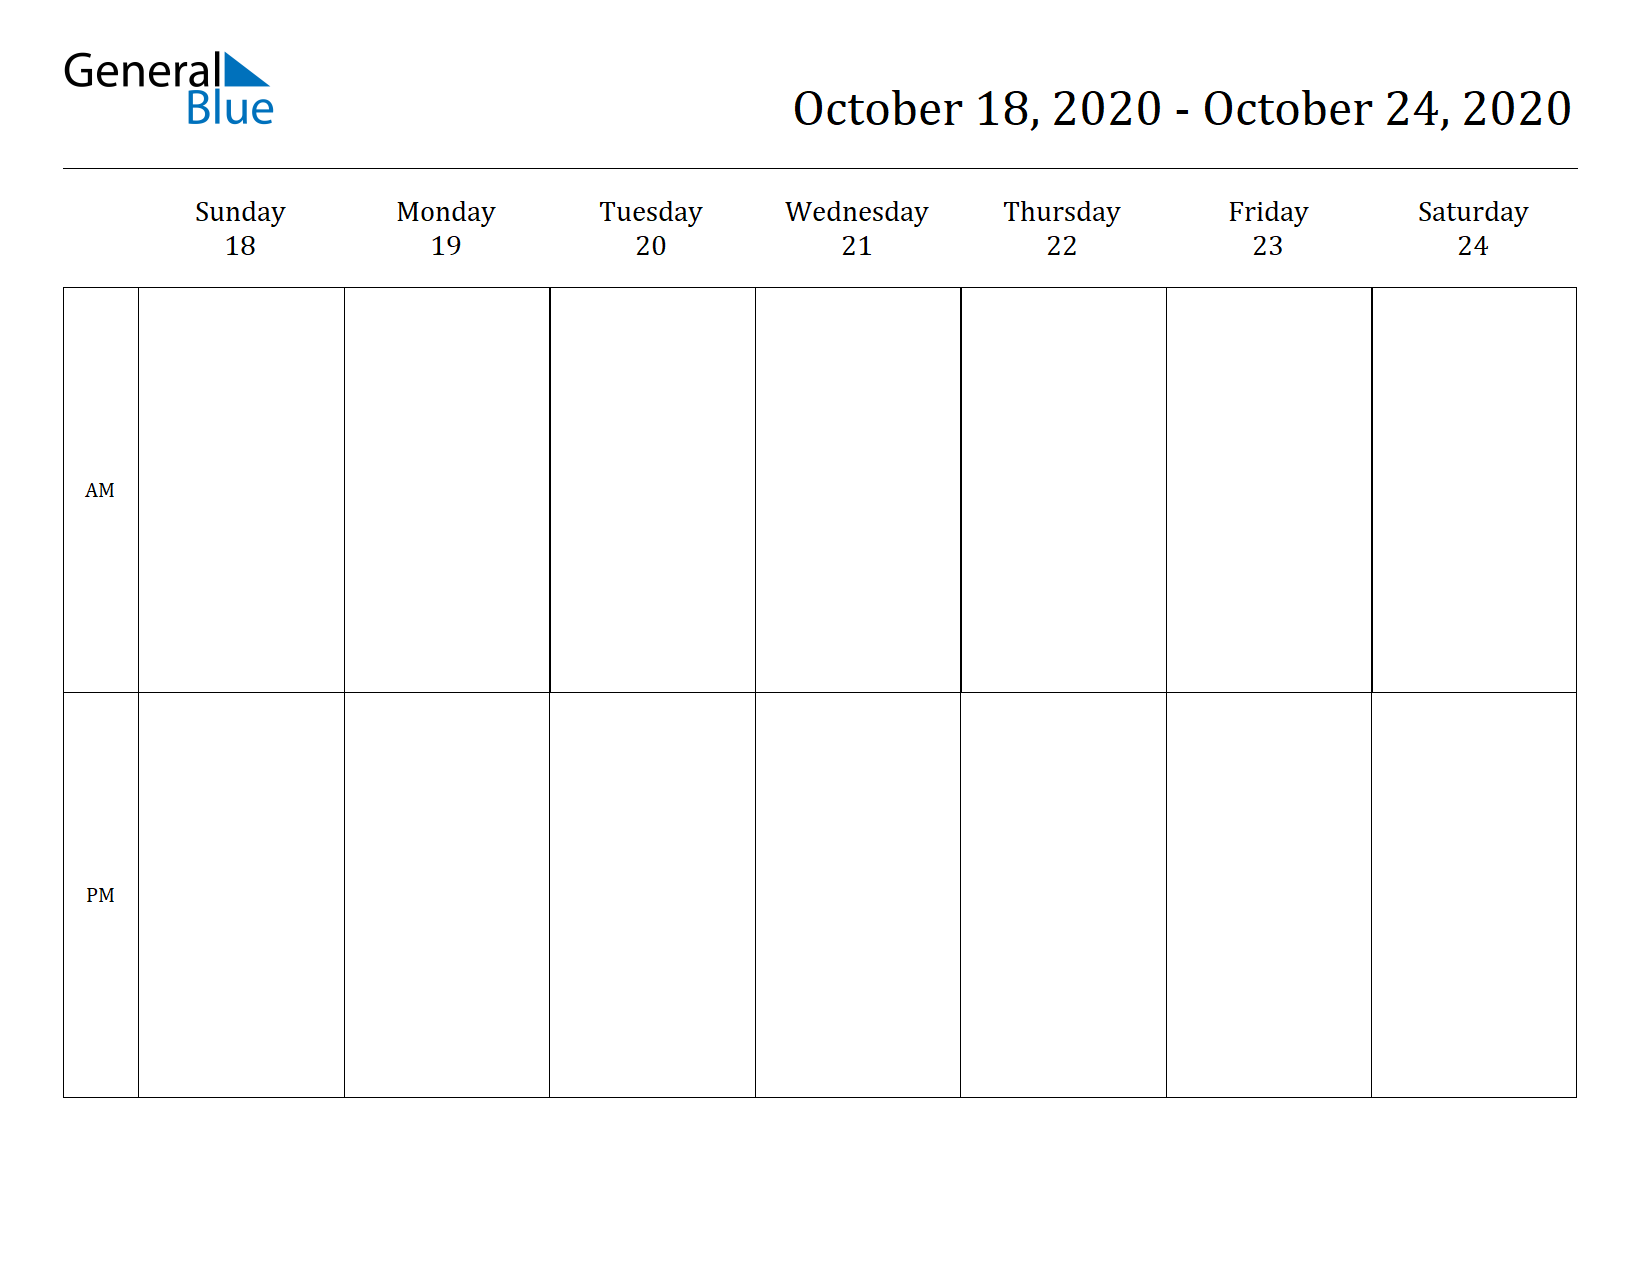 Weekly Calendar for Oct 18, 2020 to Oct 24, 2020